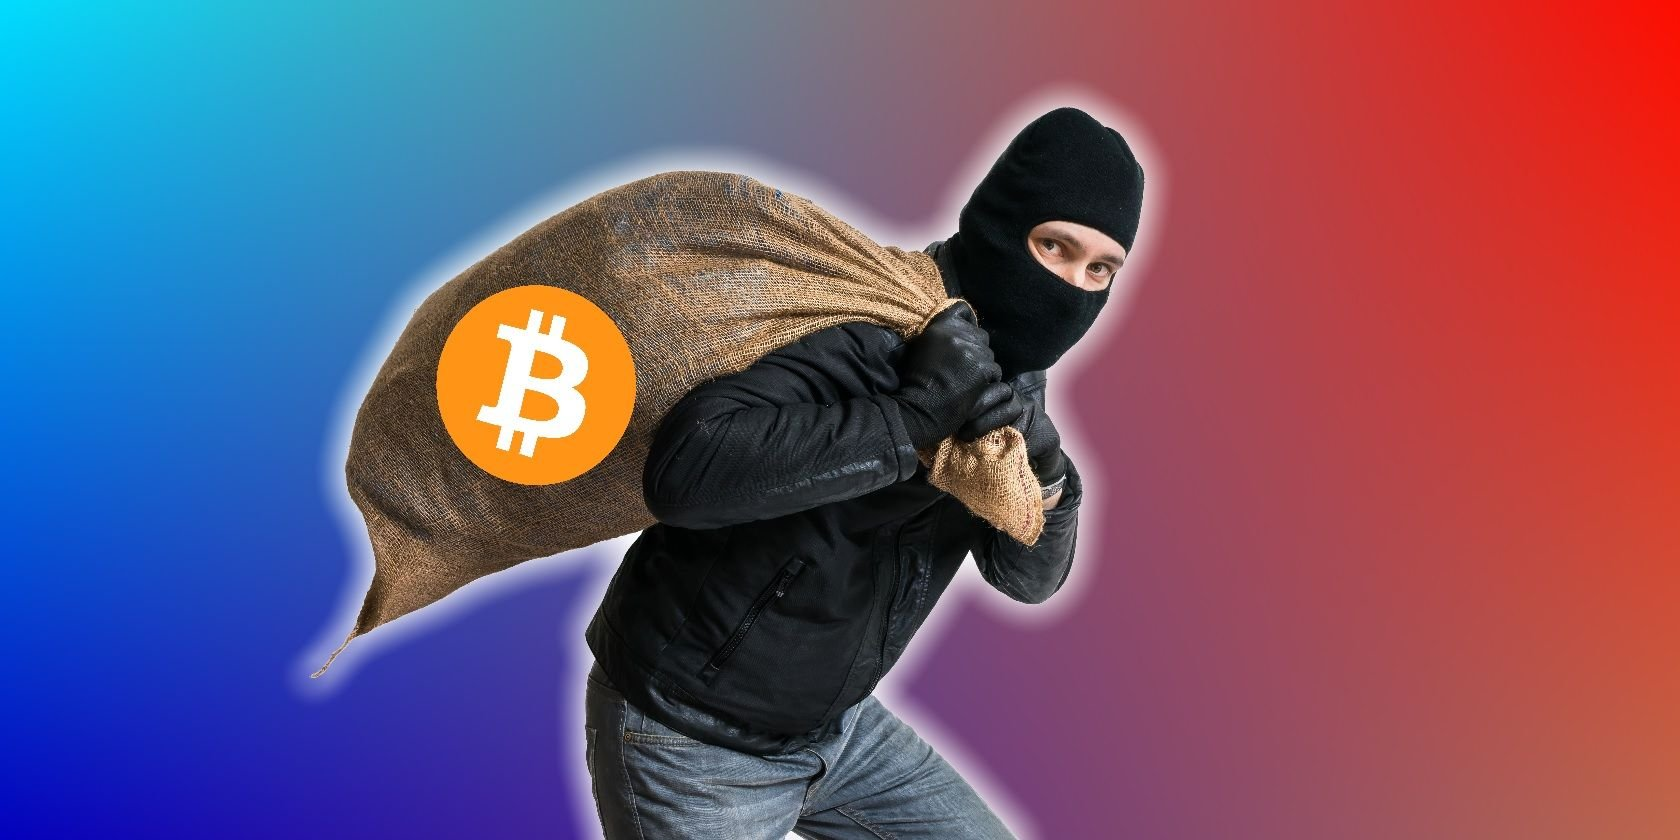 The 5 Worst Cryptocurrency Hacks and How Much They Stole